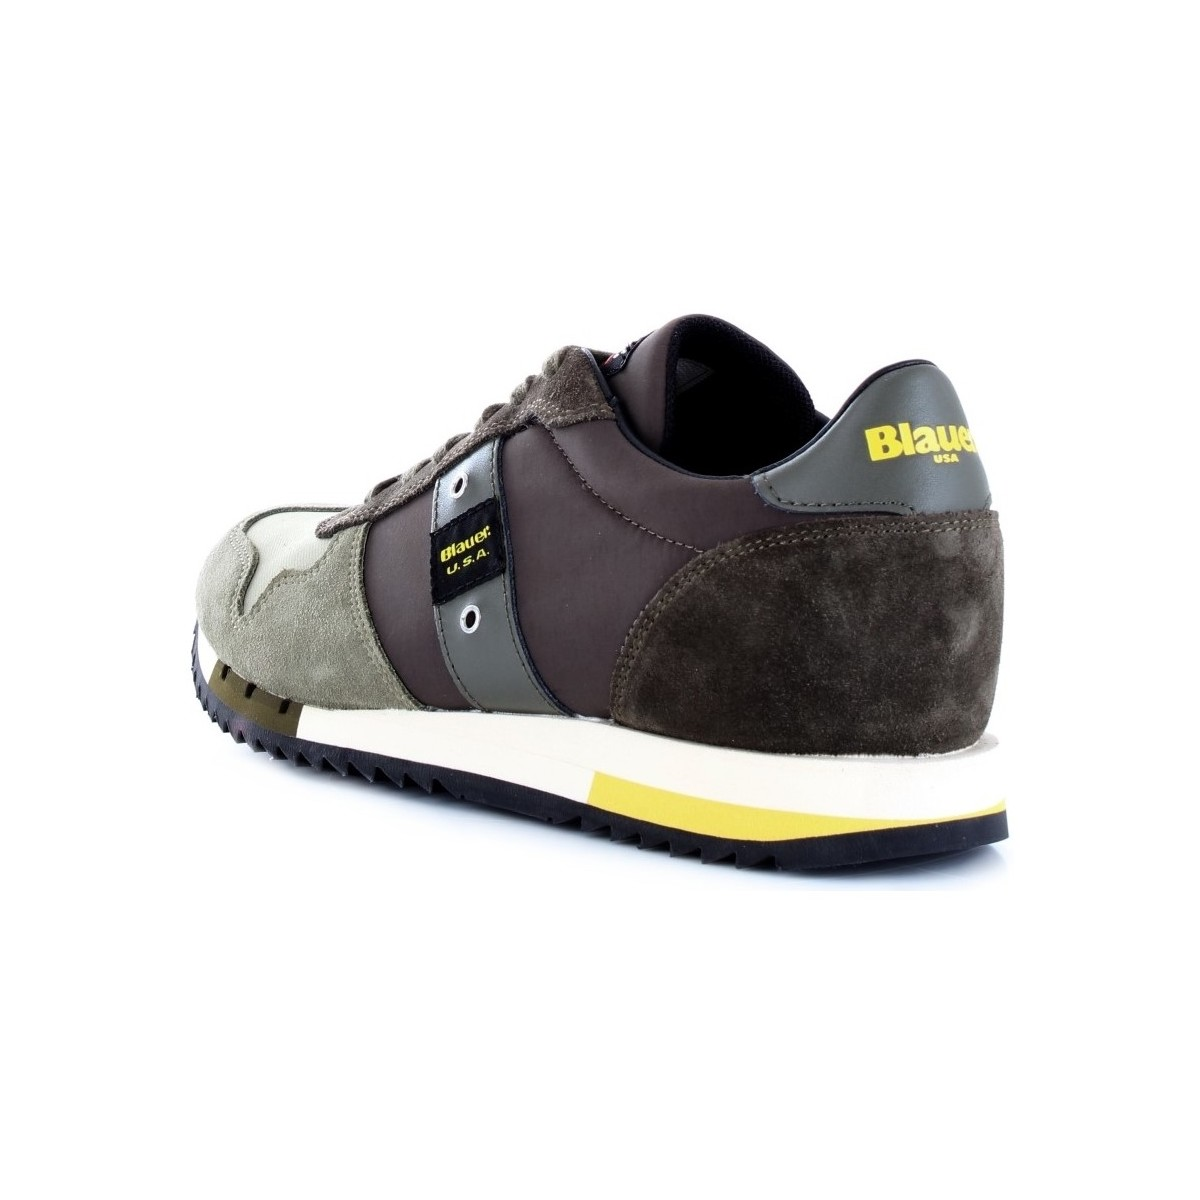 Blauer Baskets Militaire nyl 9squincy01 Homme Basses Vert Qrsthd